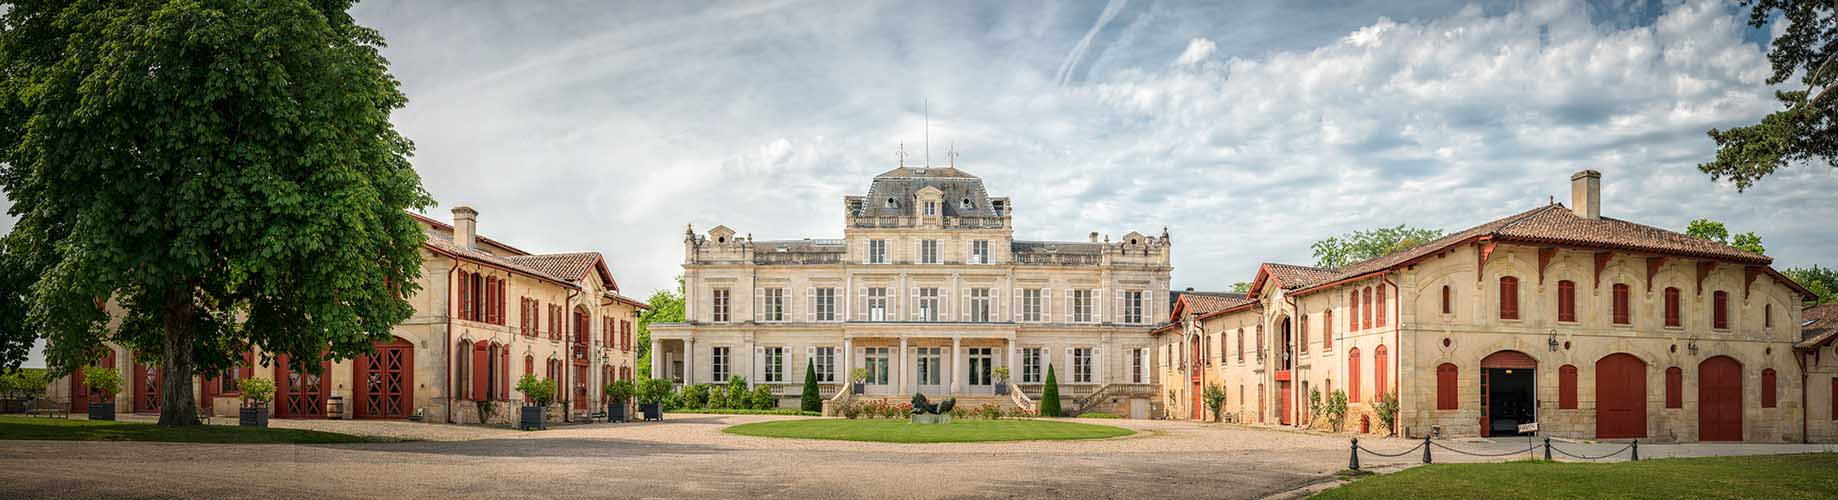 chateau-giscours-margaux